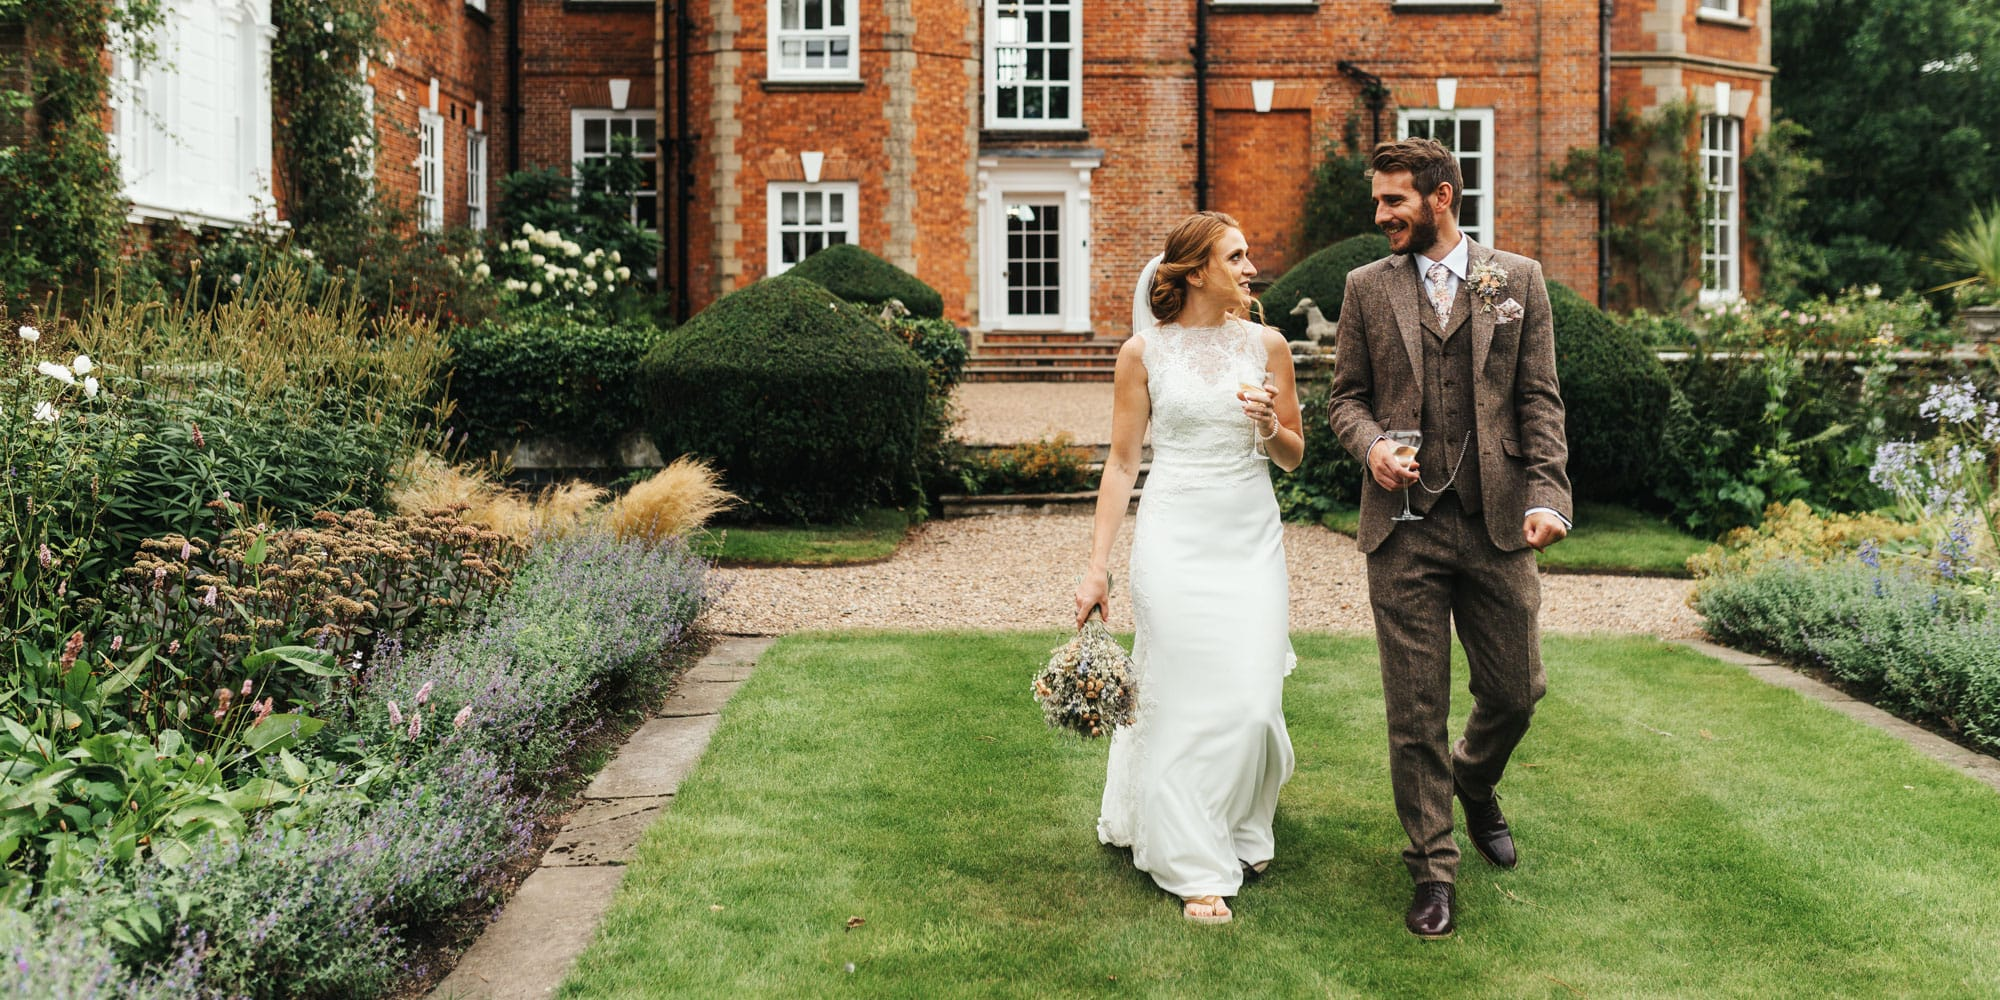 Bride and groom walking with champagne in hand in front of Shropshire stately home